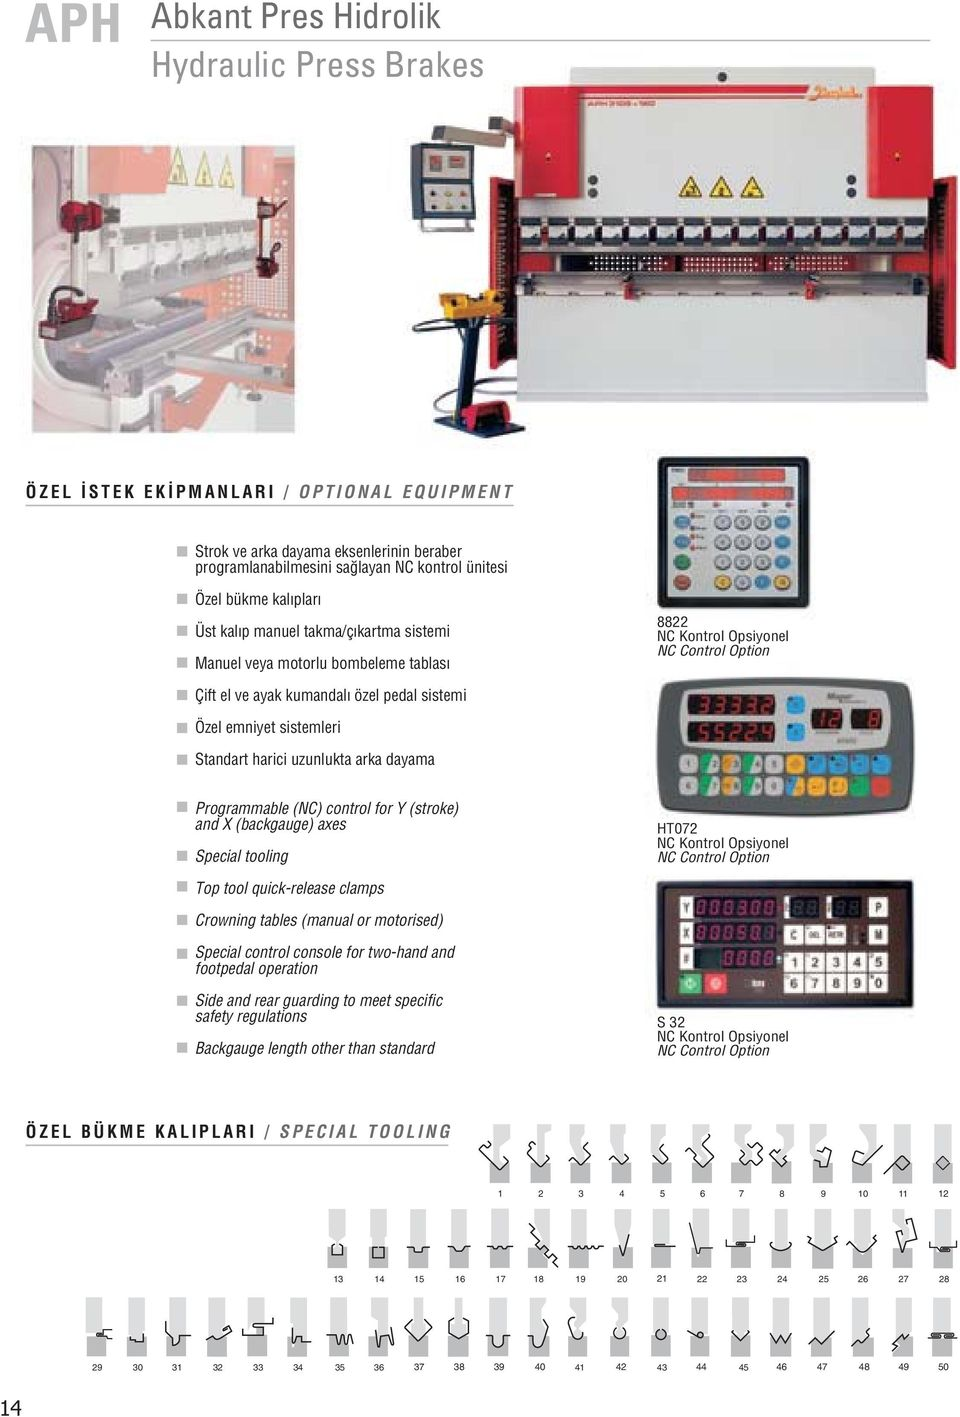 uzunlukta arka dayama Prograable (NC) control for Y (stroke) and X (backgauge) axes Special tooling HT072 NC Kontrol Opsiyonel NC Control Option Top tool quickrelease clamps Crowning tables (manual